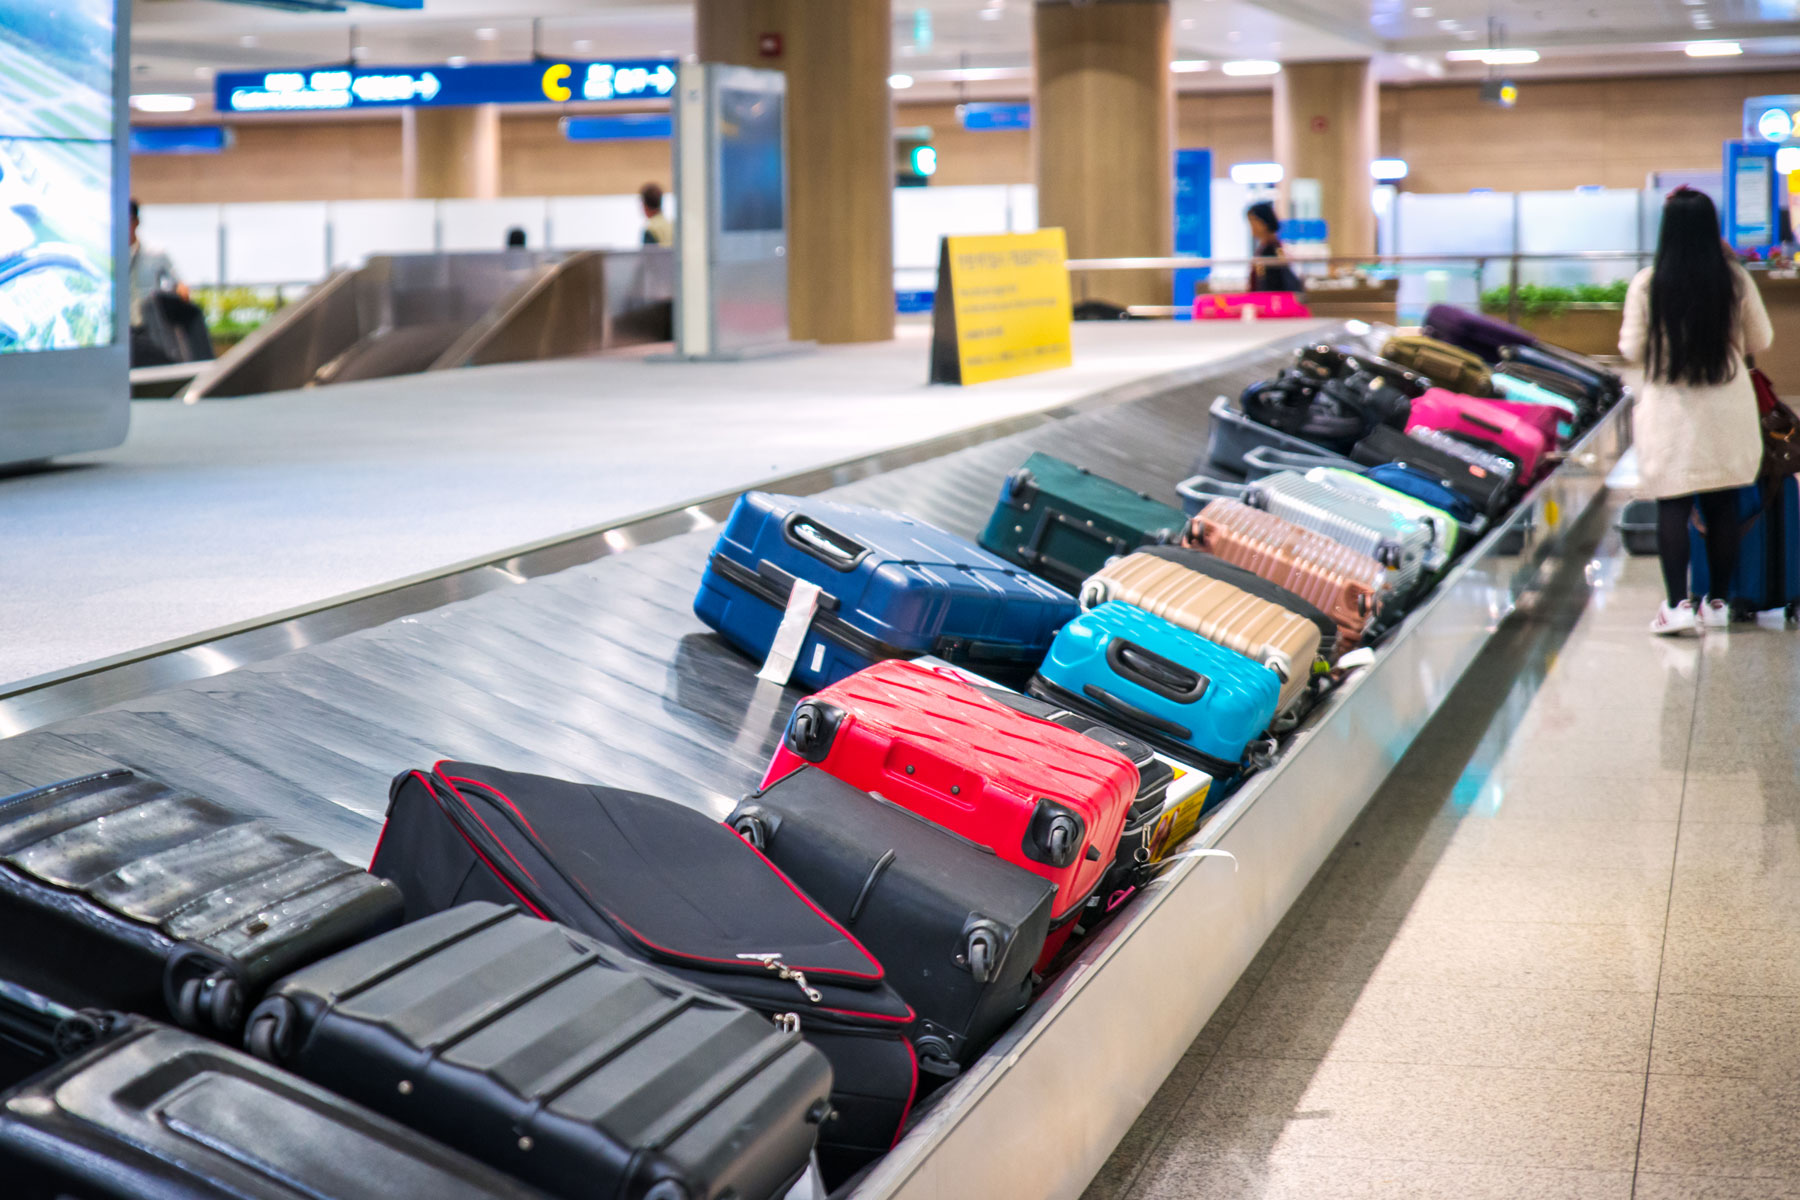 Baggage waiting to be claimed at airport